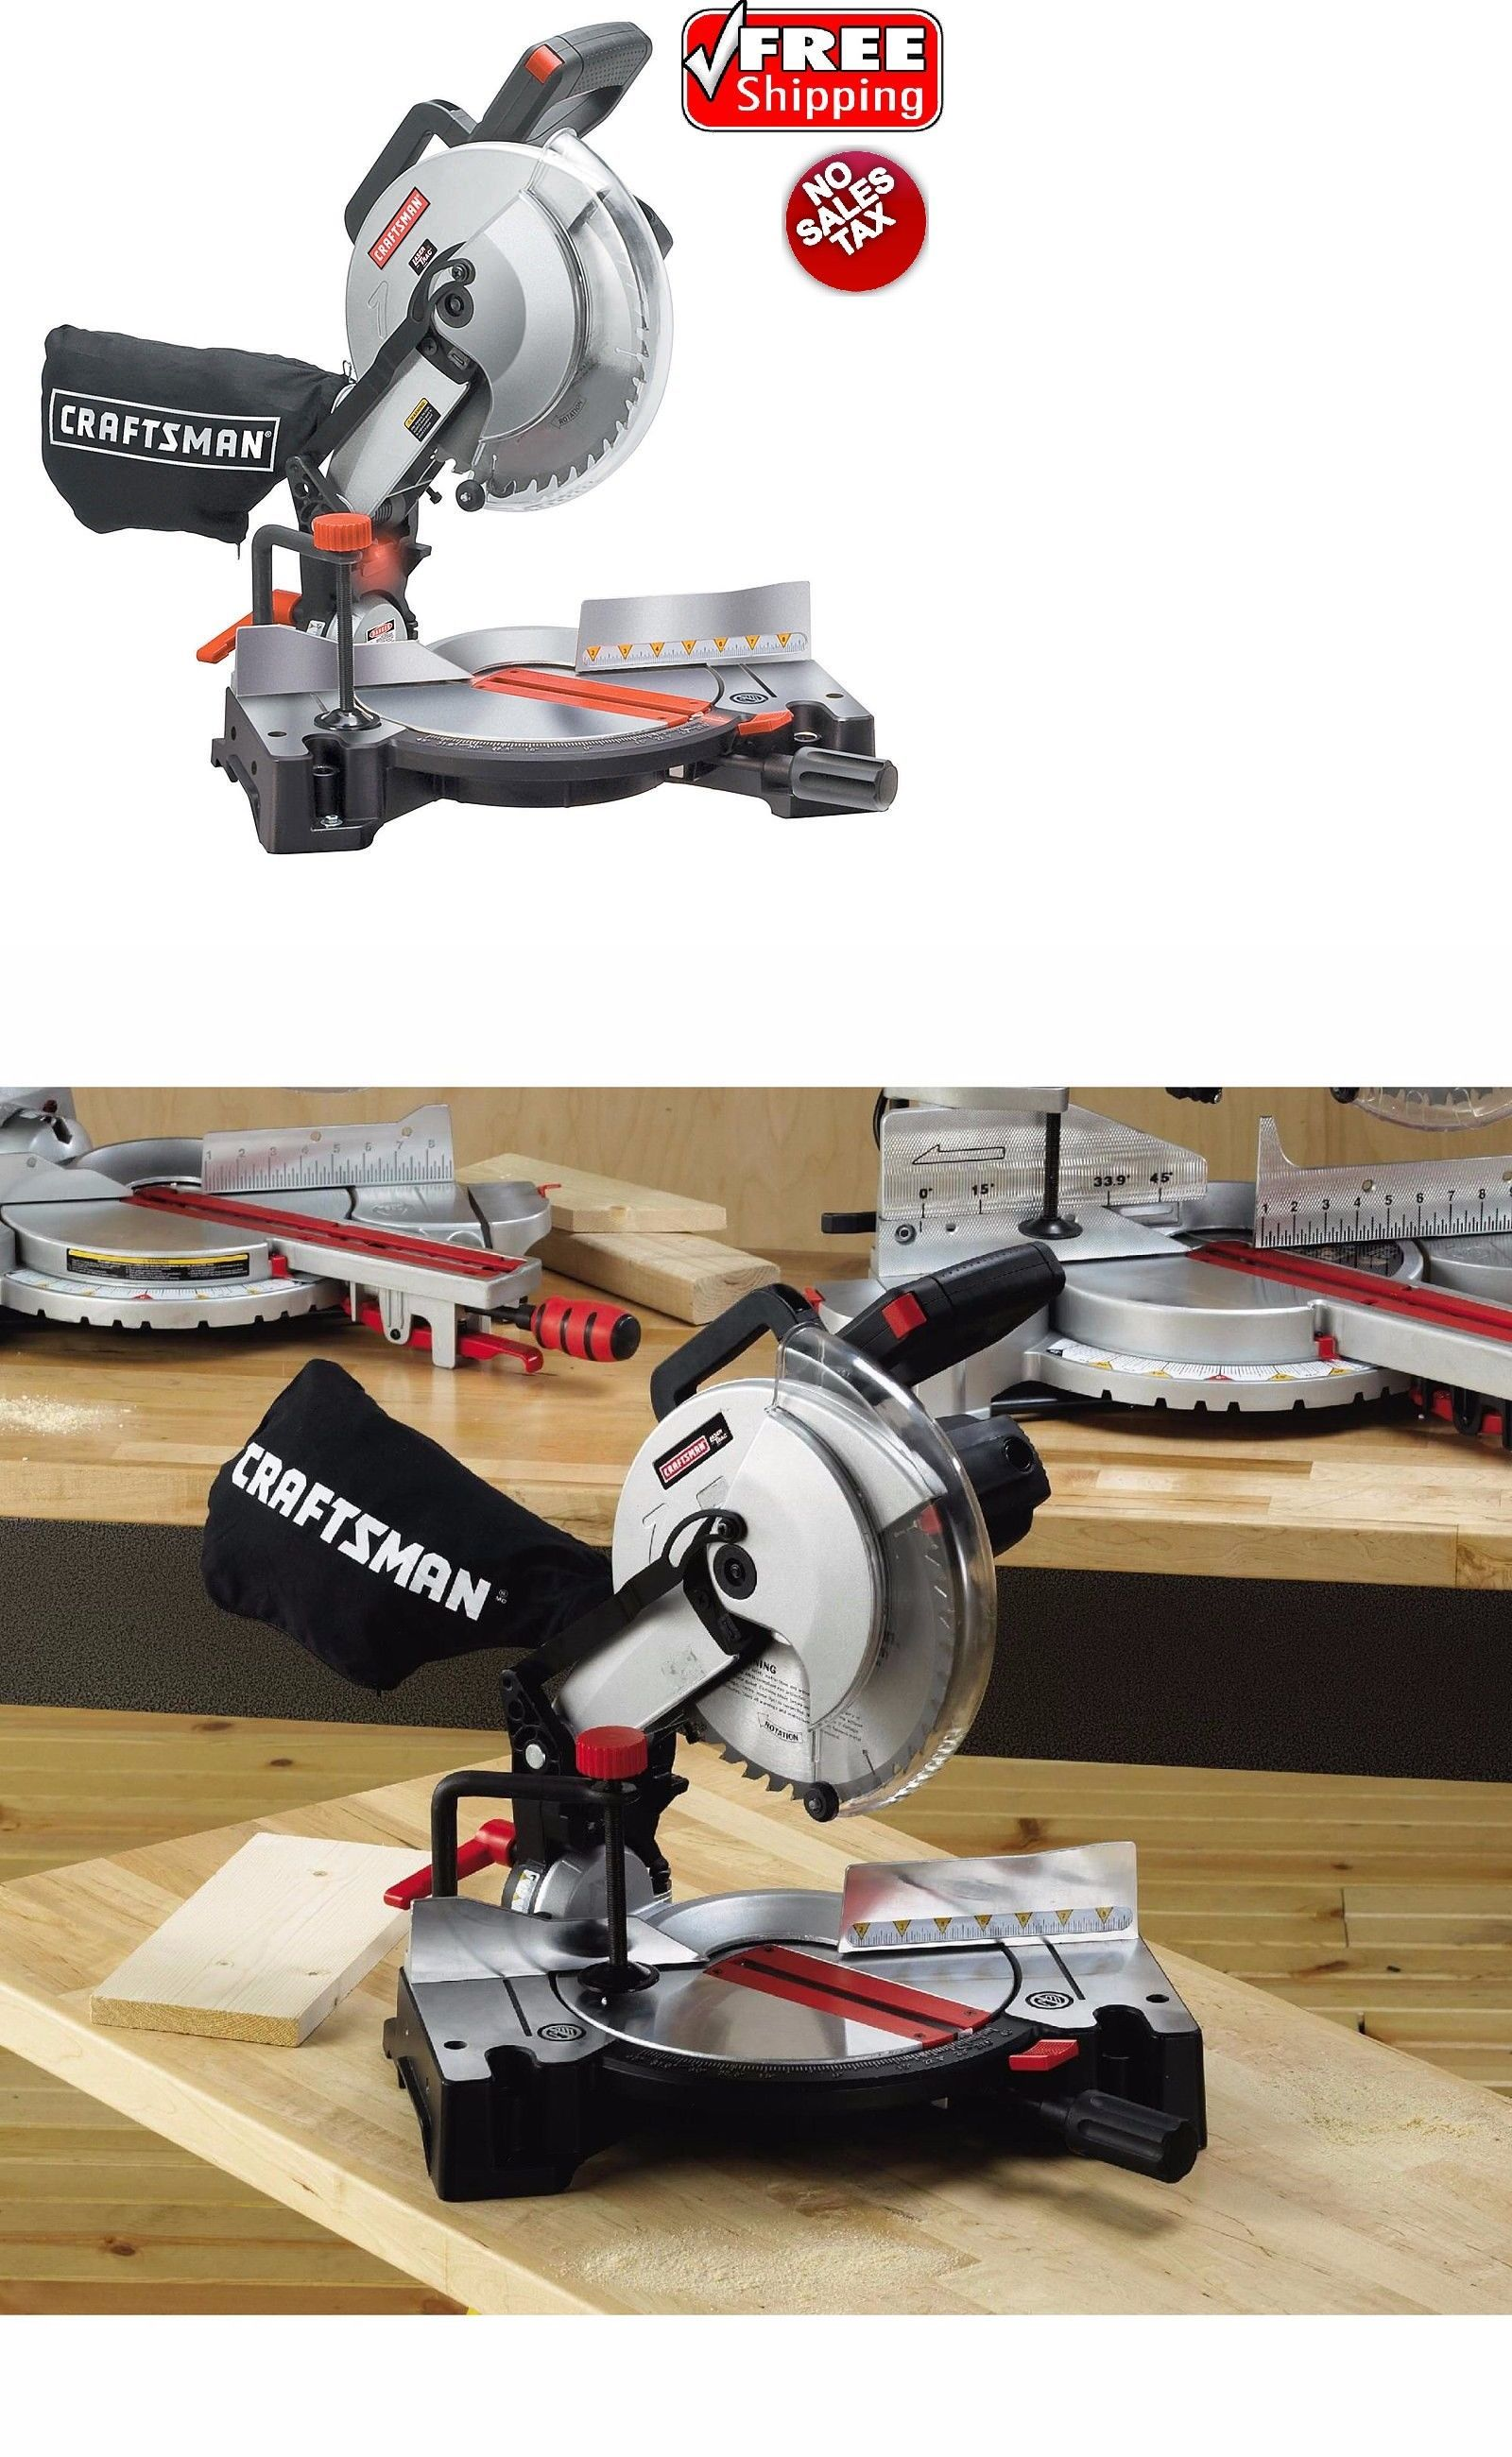 Craftsman Electric 10 Compound Miter Saw 15 Amp Laser Trac Portable Wood Lumber Wood Lumber Compound Mitre Saw Miter Saw